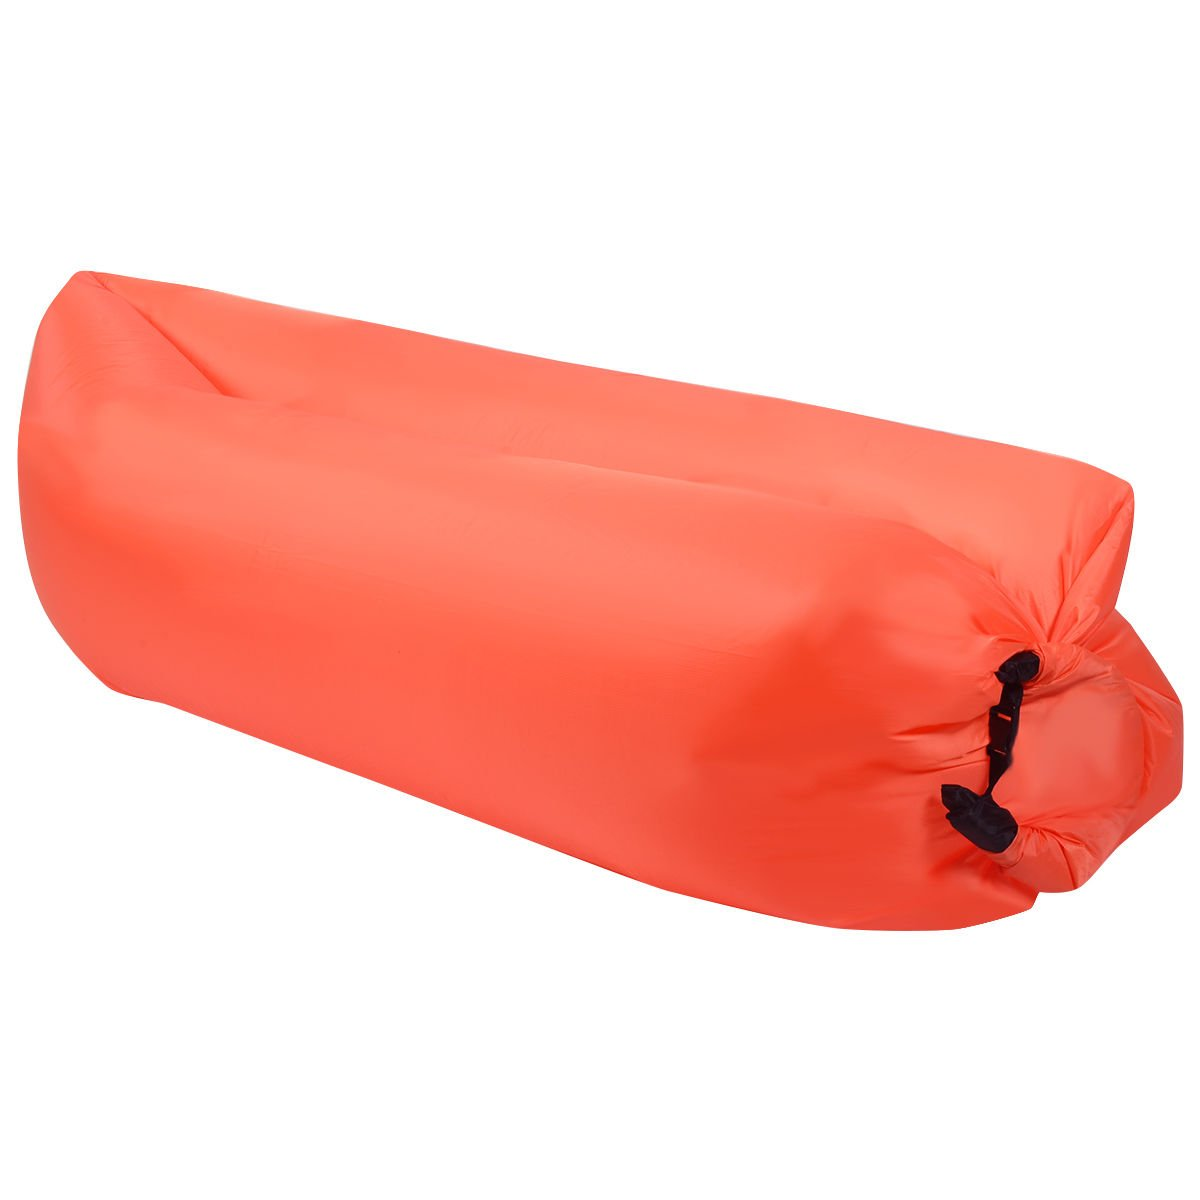 Eight24hours Outdoor Lazy Inflatable Couch Air Sleeping Sofa Lounger Bag Camping Bed Portable - Orange + FREE E - Book